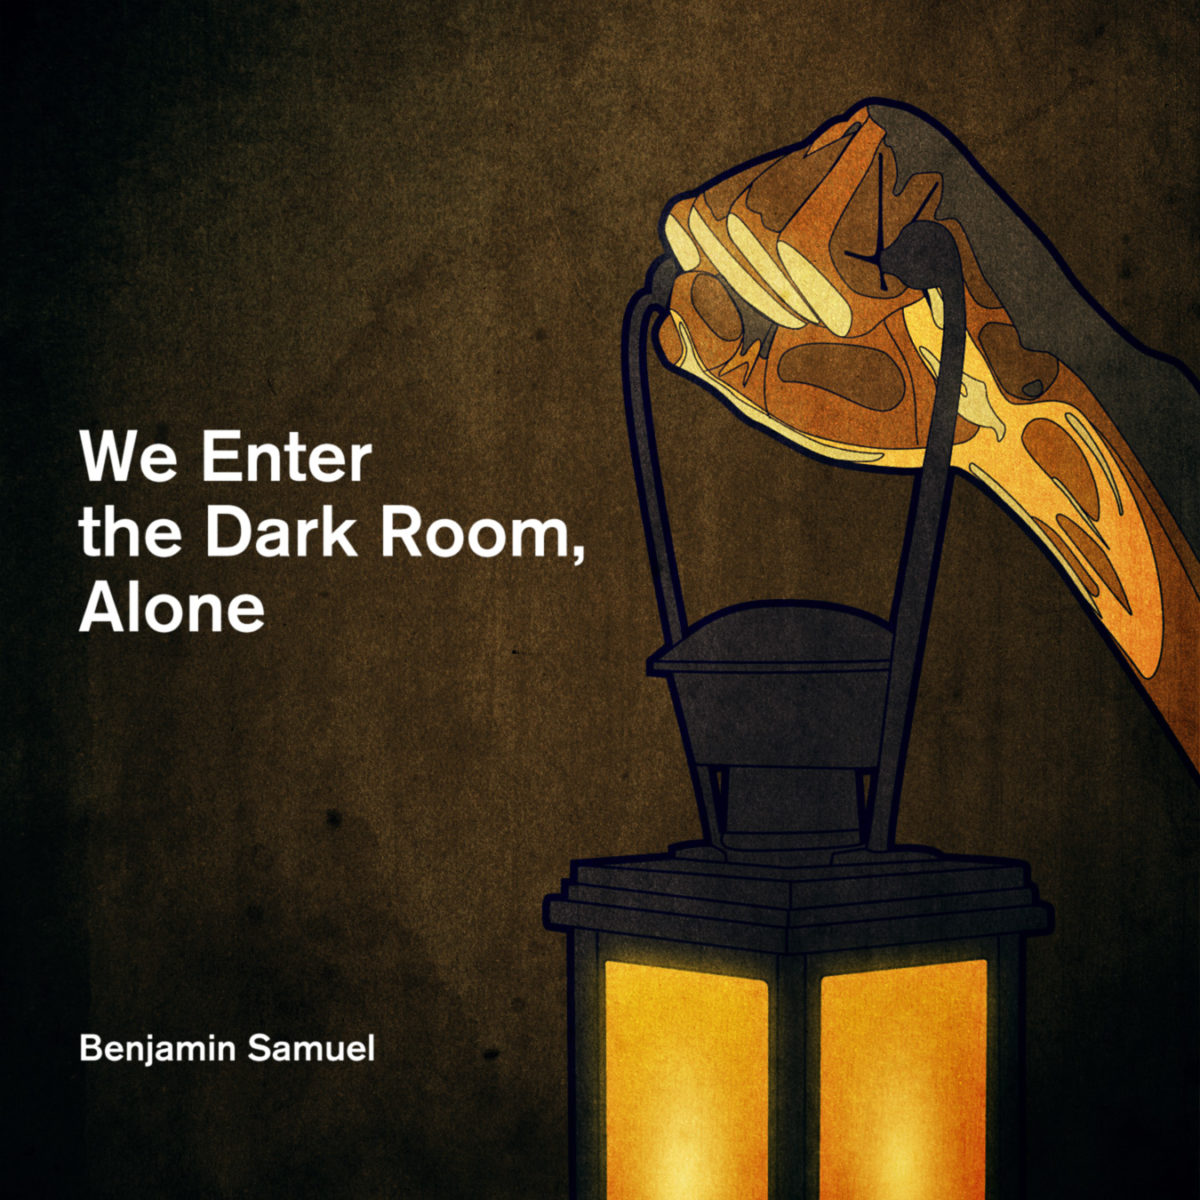 We Enter the Dark Room, Alone